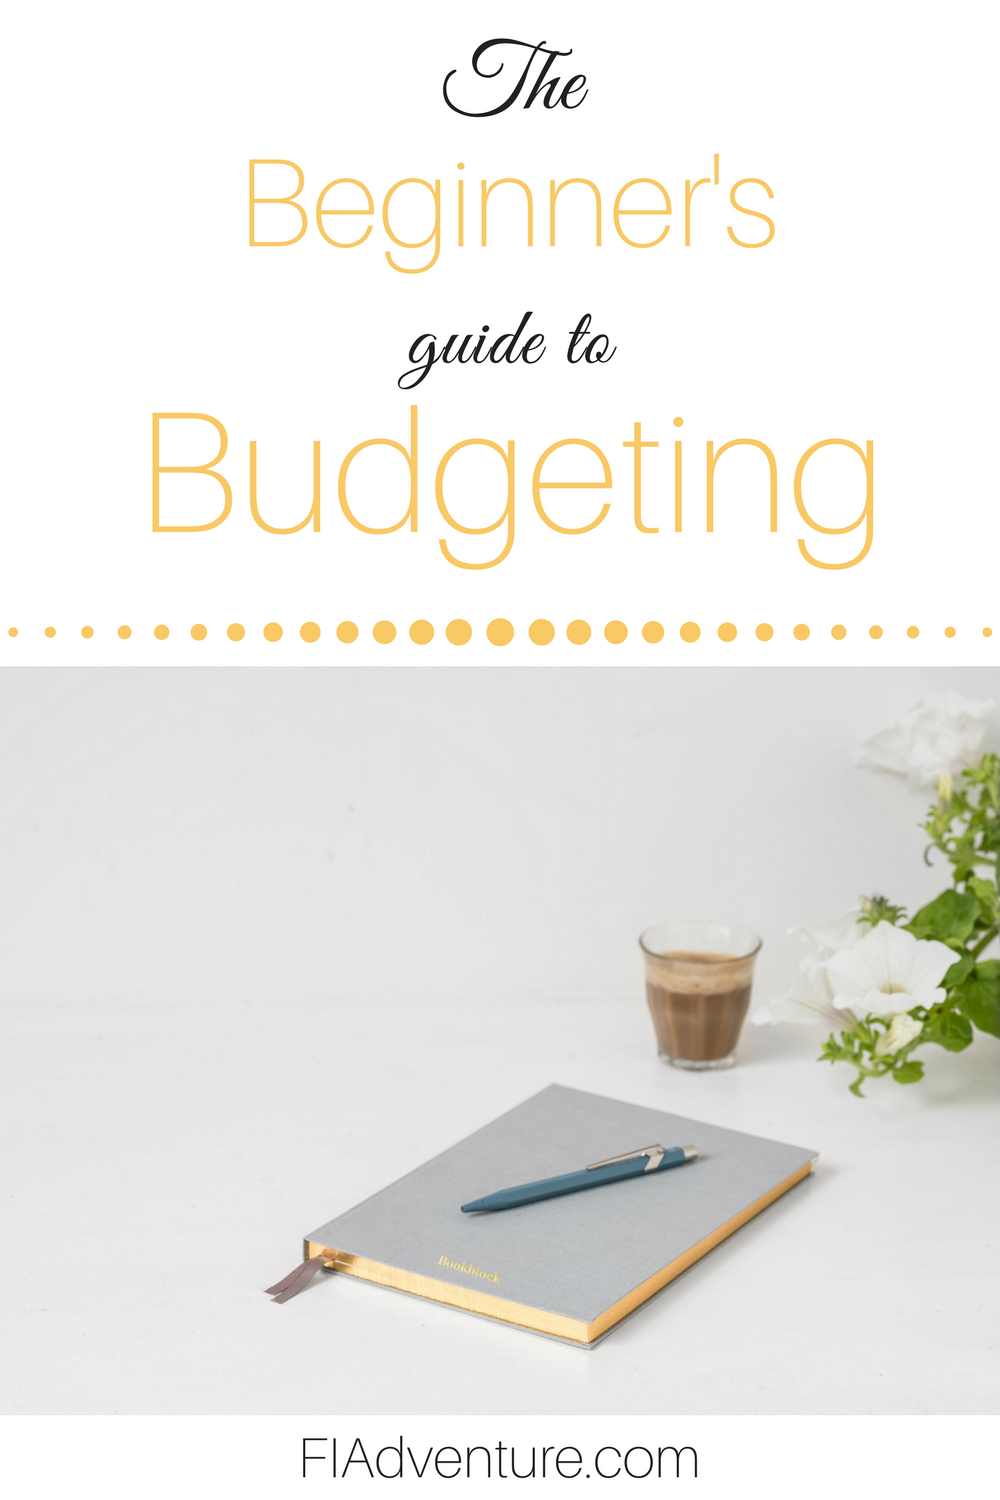 Creating a budget shouldn't be a stressful experience. With just 5 easy steps you can build a basic budget to help you get your financial life in order. All you need is a little time, a piece of paper, and your bank statements to get started...